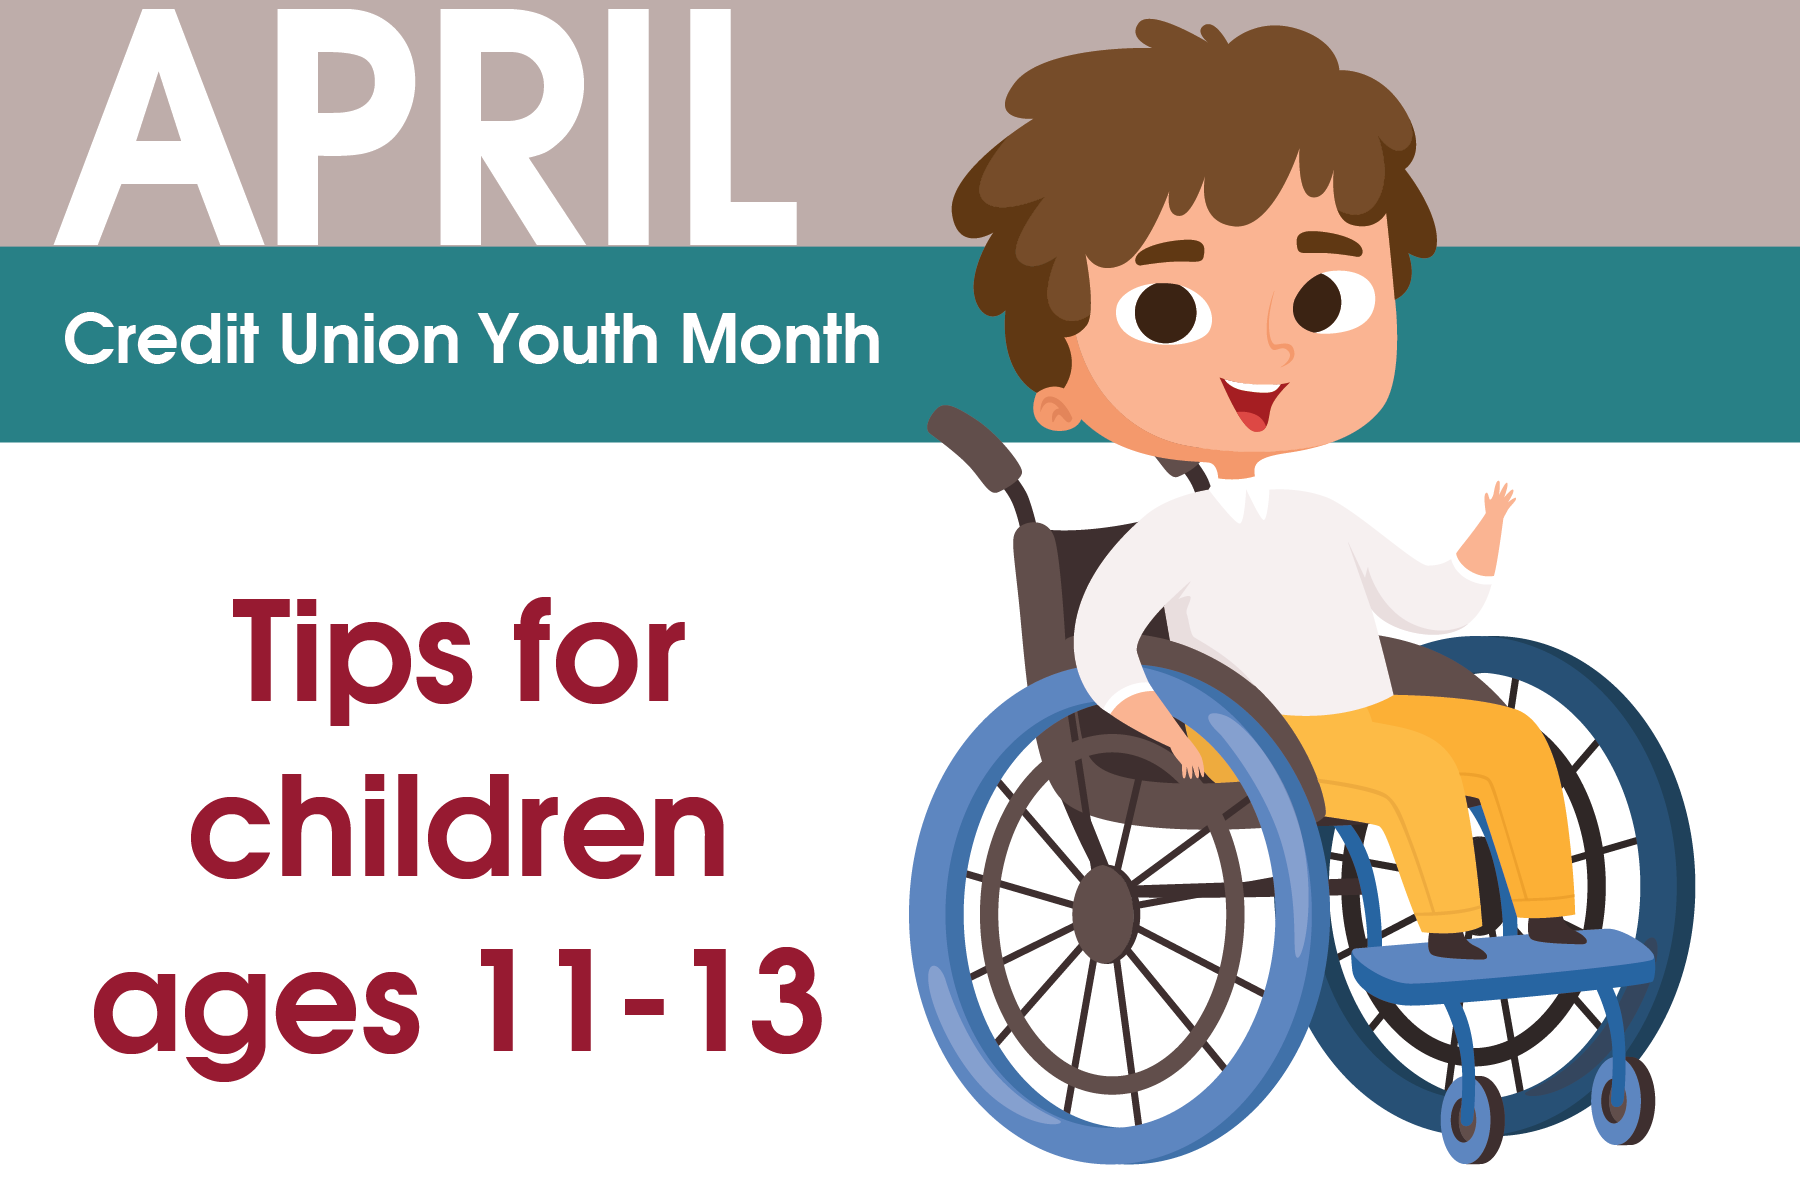 Credit Union Youth Month: Ages 11 - 13